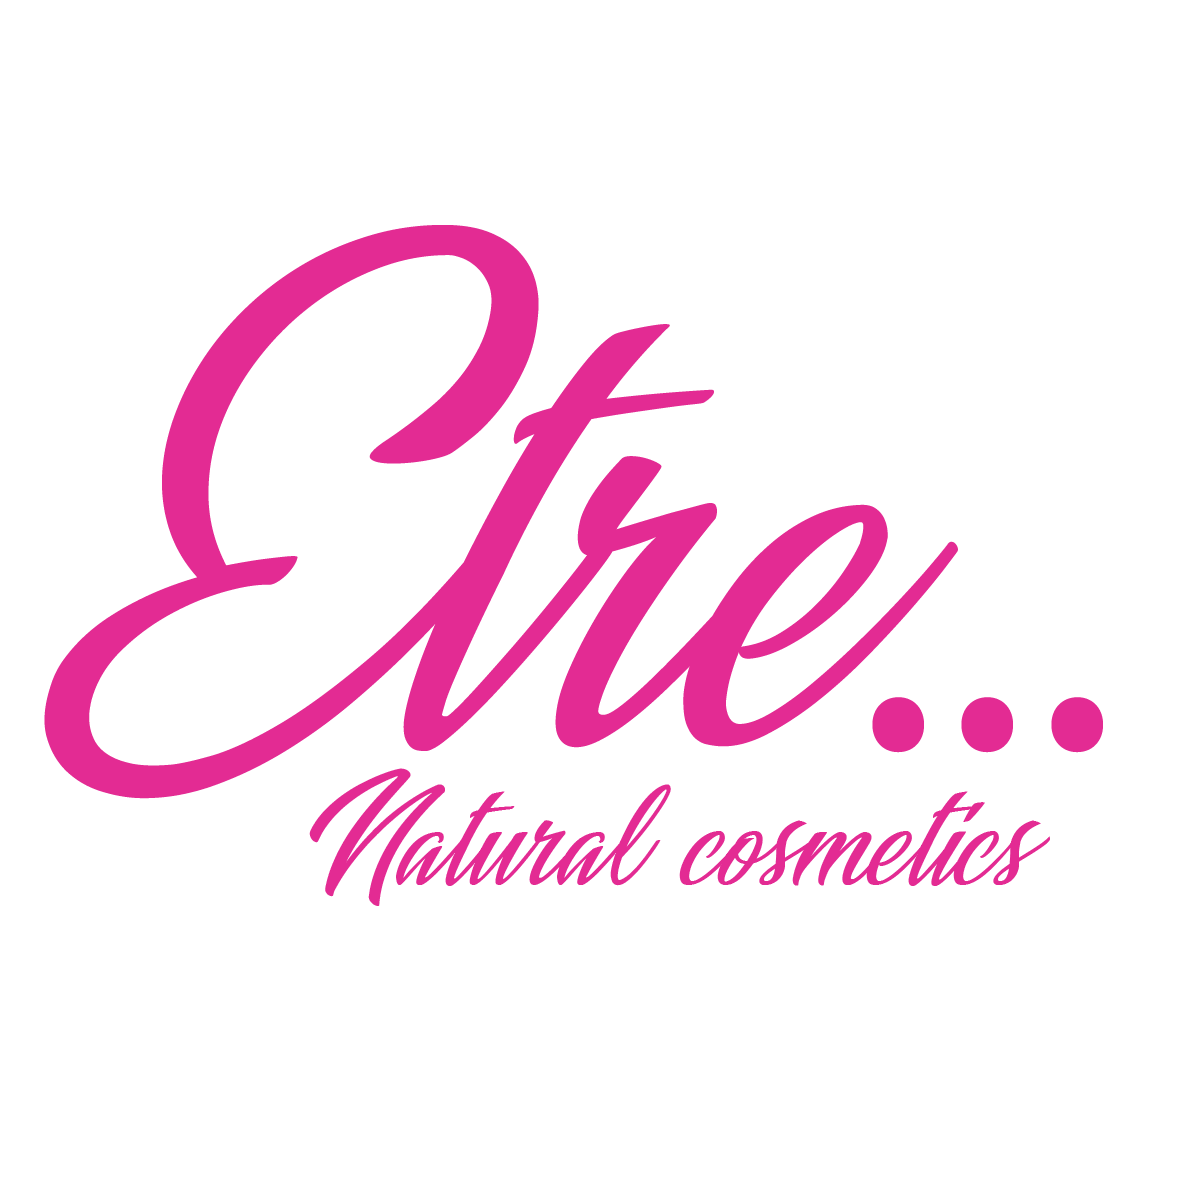 Etre natural cosmetics